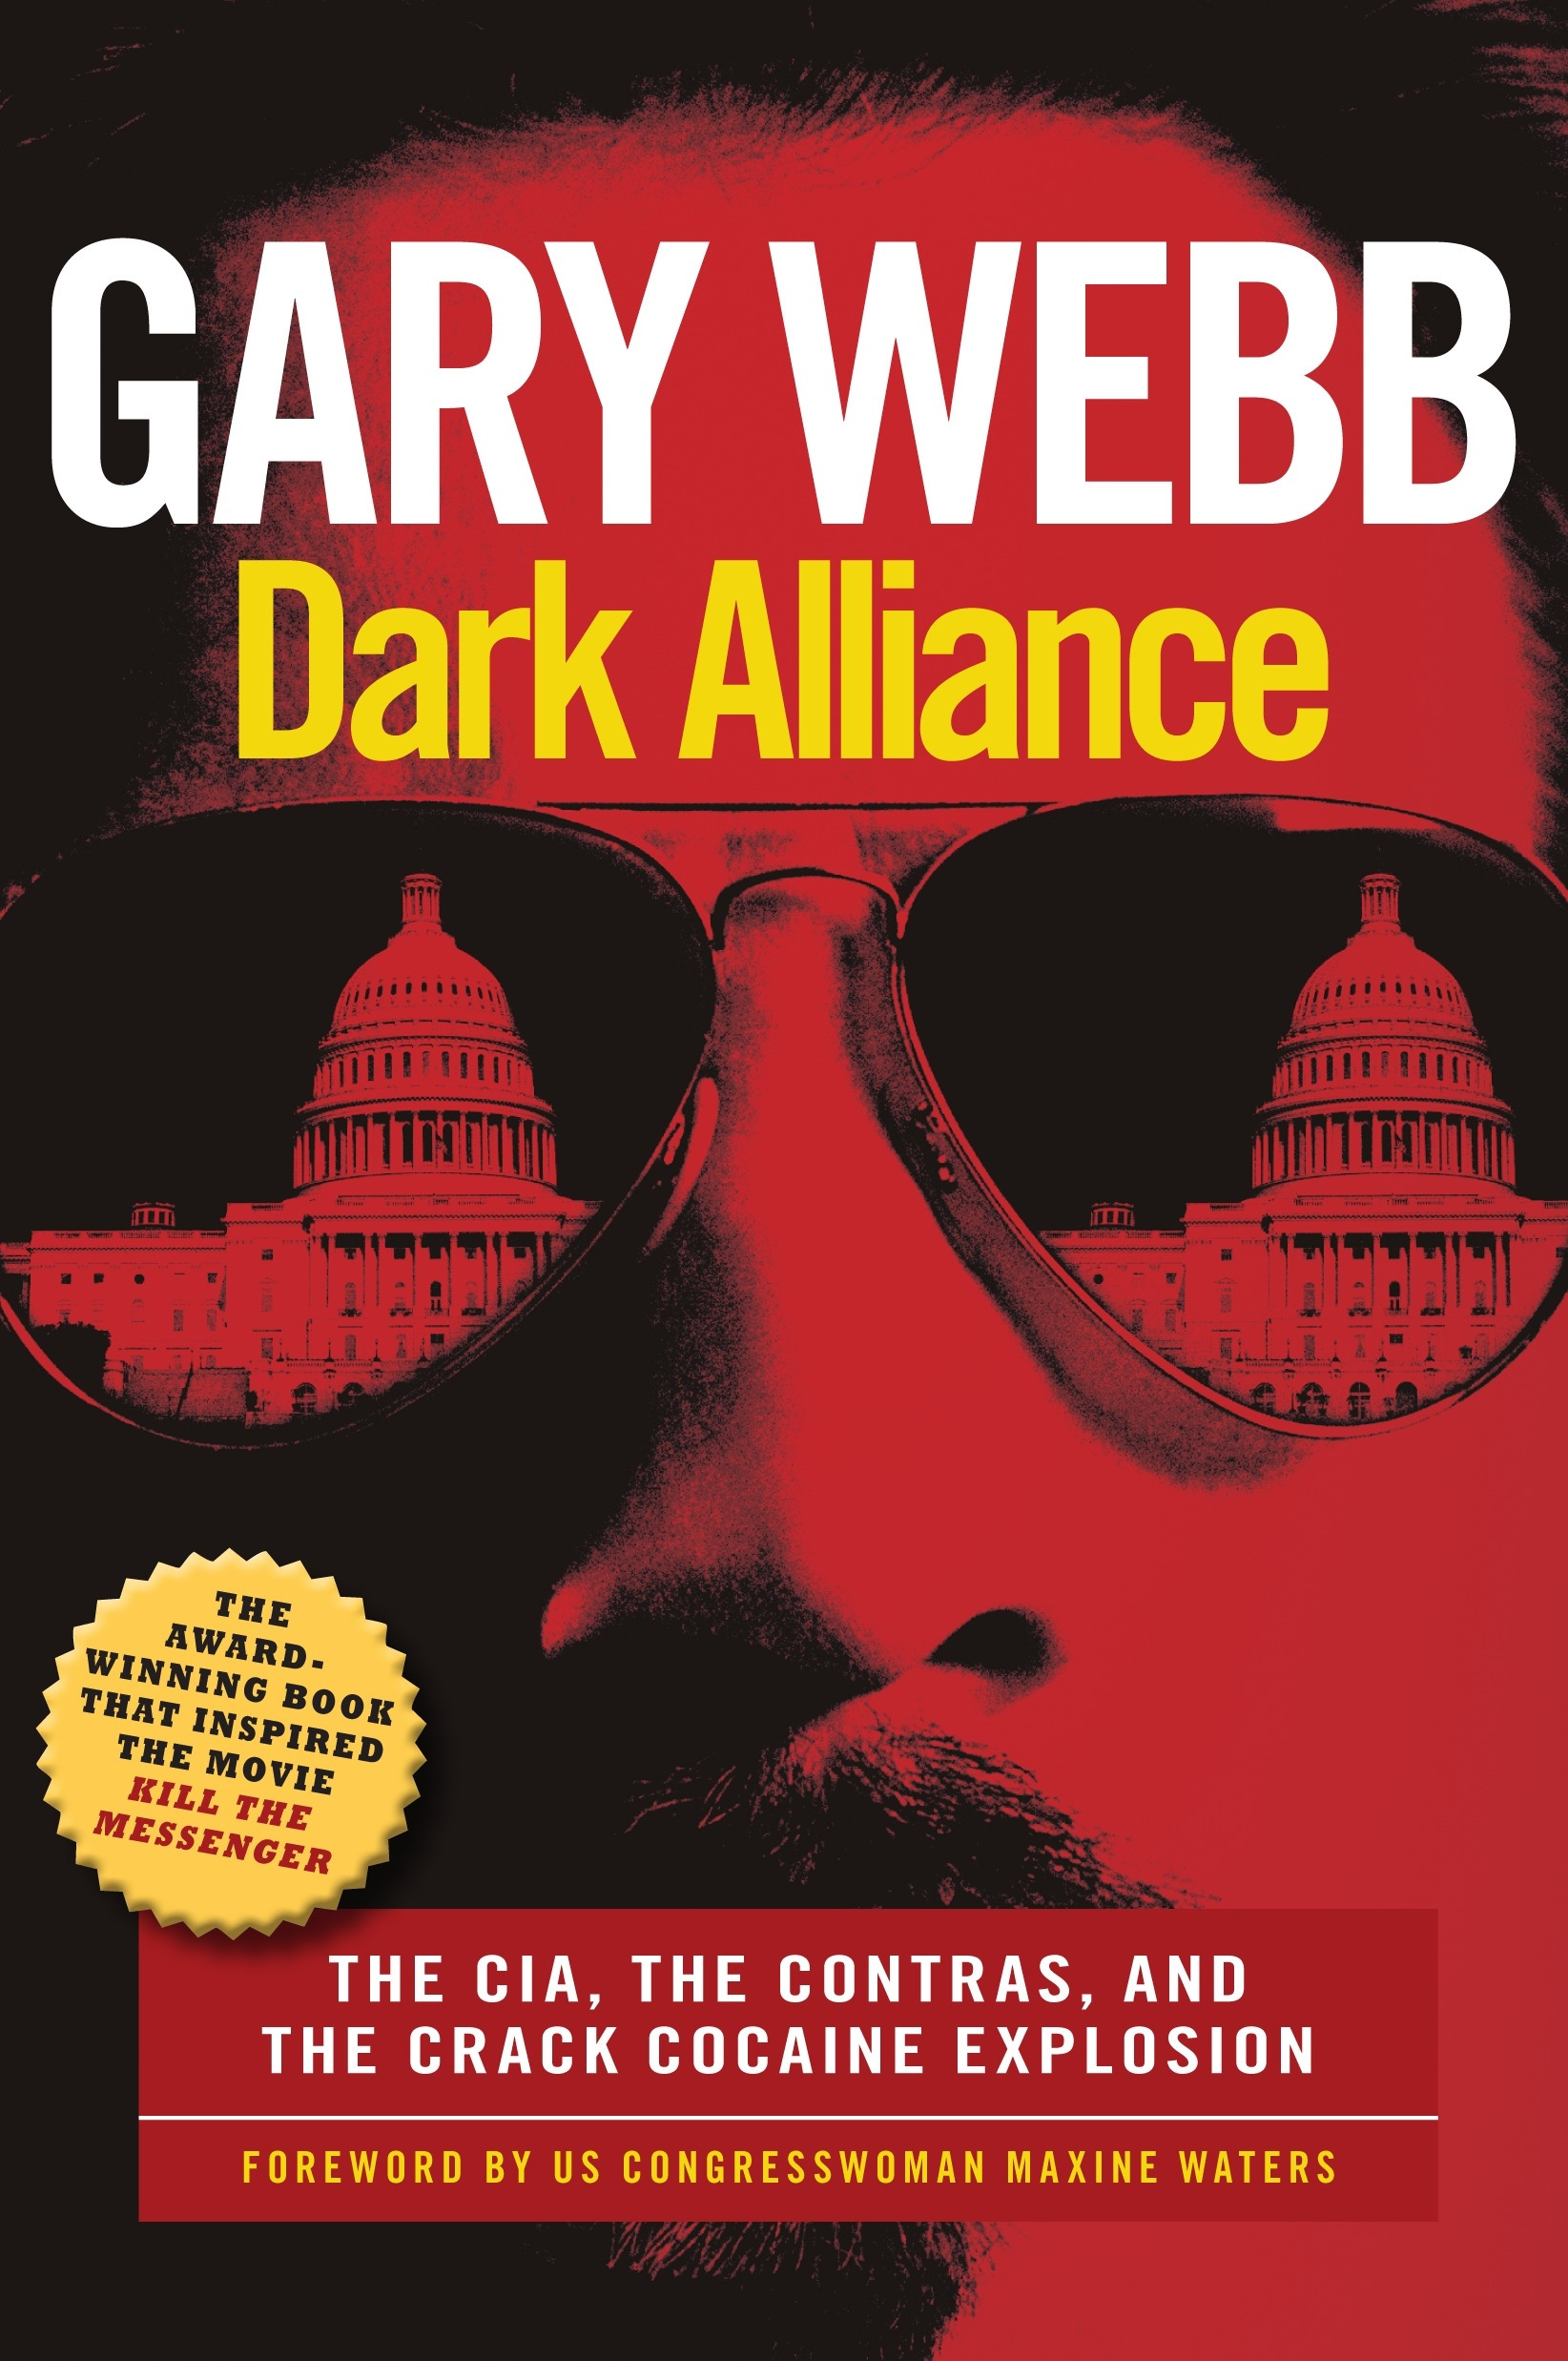 an analysis of the series in the san jose mercury news by reporter gary webb Webb was the relatively small potatoes reporter at the san jose mercury  but a  decade later gary webb connected many of the dots in a series of  they got  scooped by a pipsqueak outlet like the san jose mercury news,.